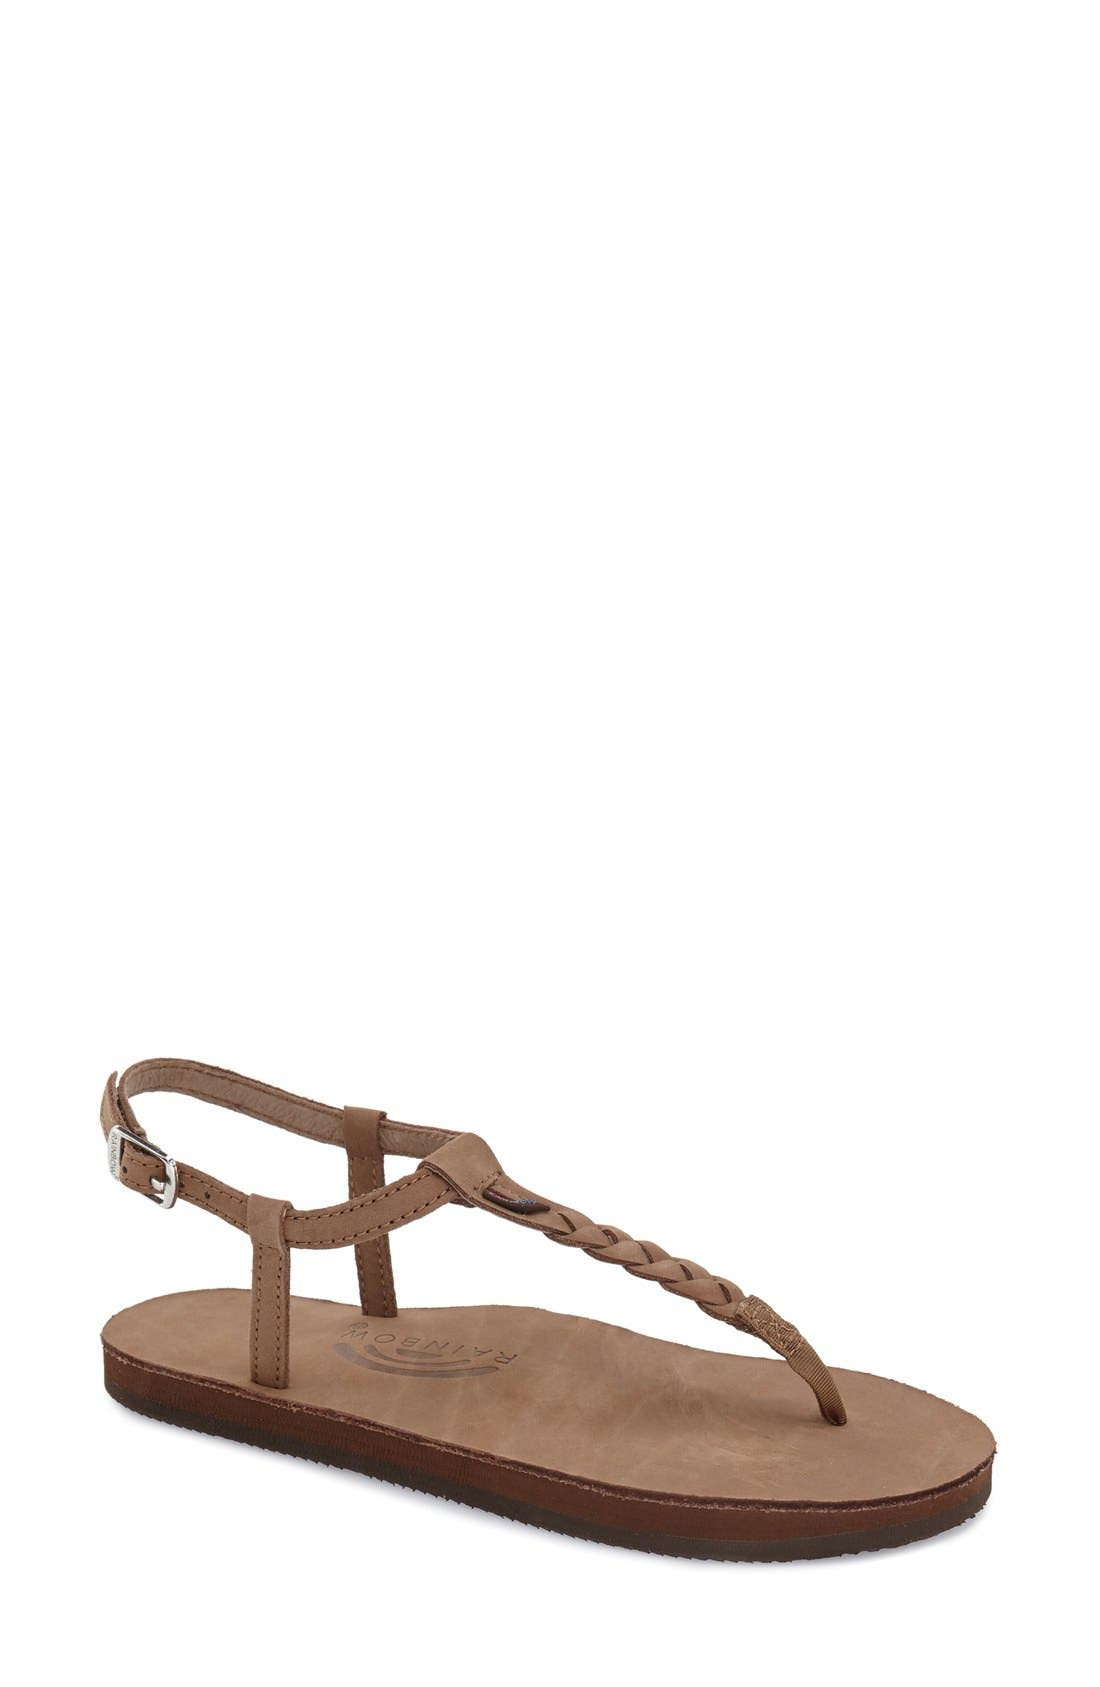 'T-Street' Braided T-Strap Sandal,                             Main thumbnail 1, color,